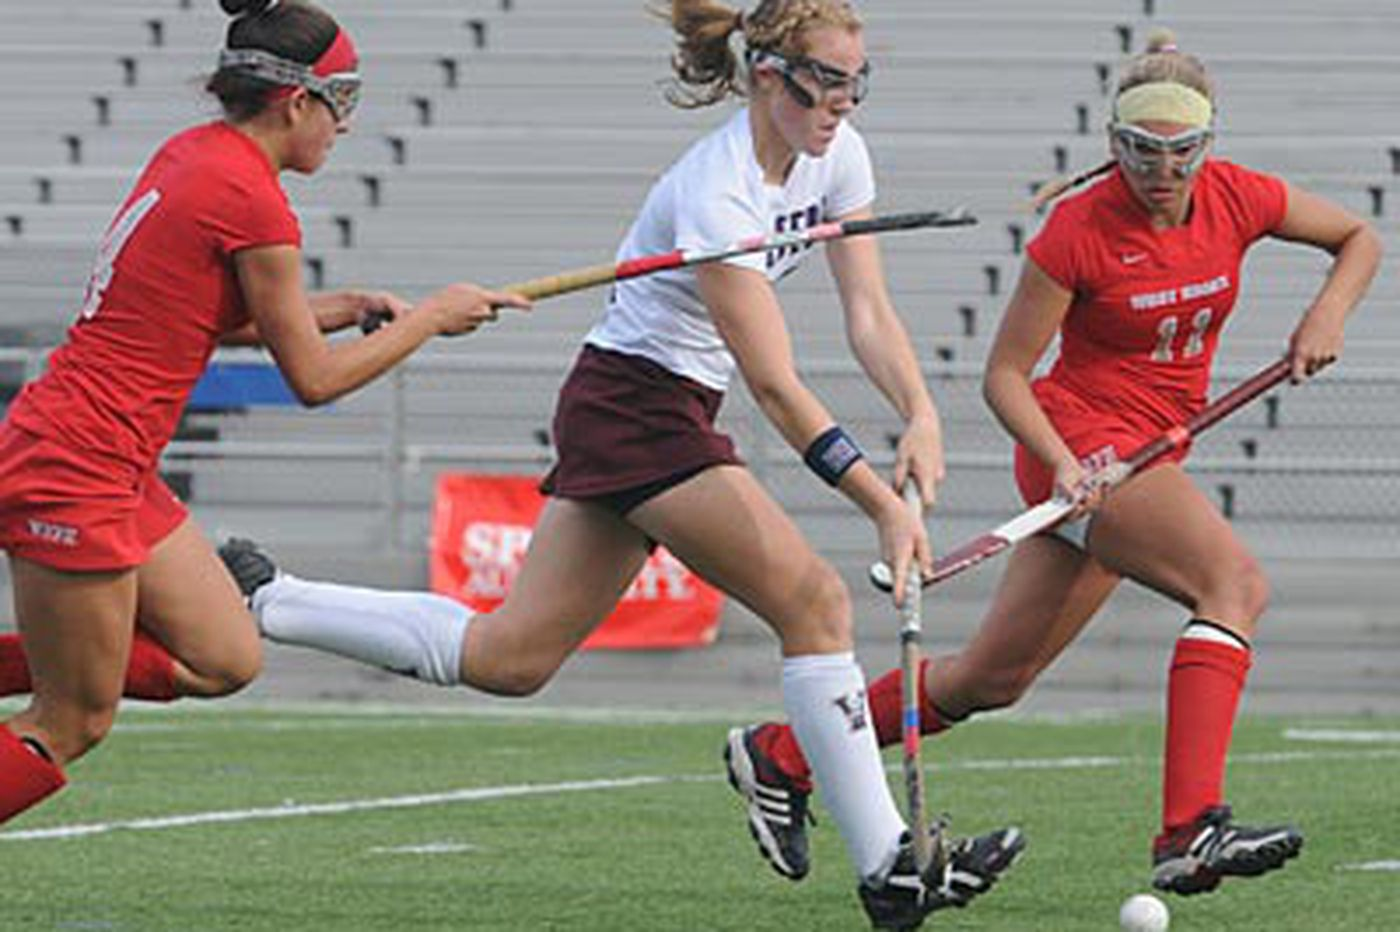 Cuneo is field hockey Player of the Year